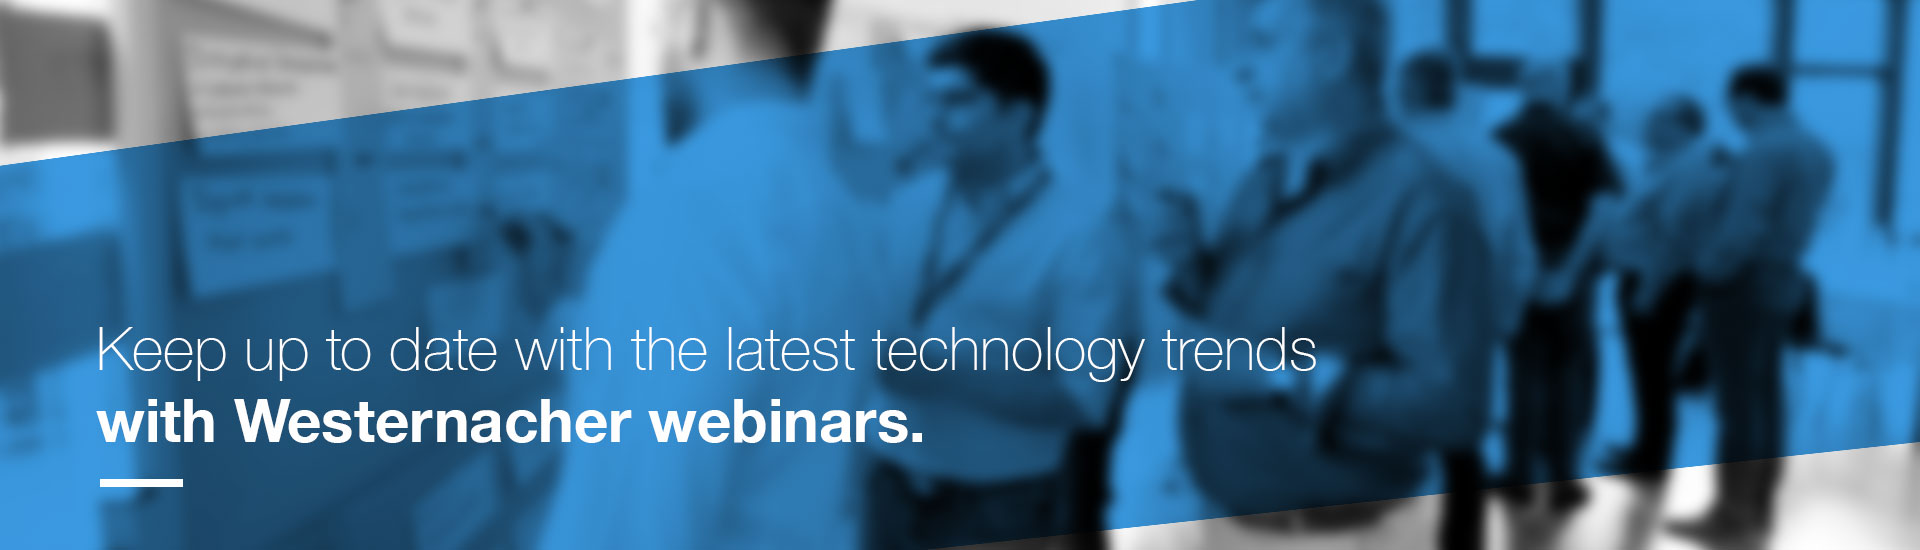 Westernacher Webinars - Watch now! | Westernacher Consulting